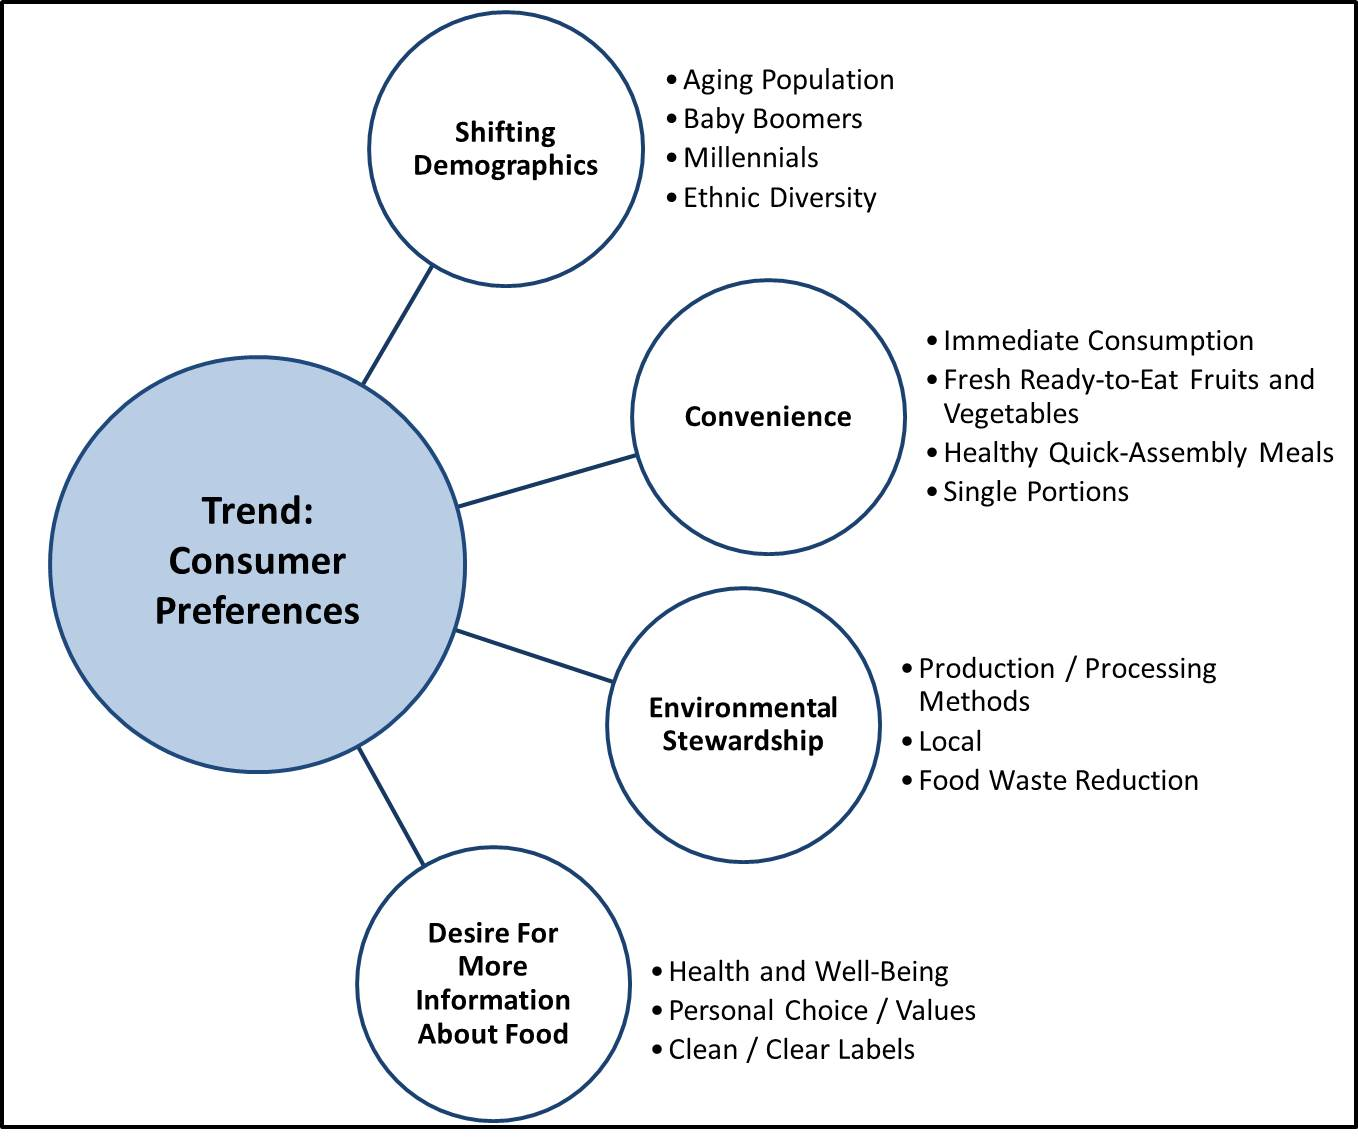 Emerging Food Innovation: Trends and Opportunities